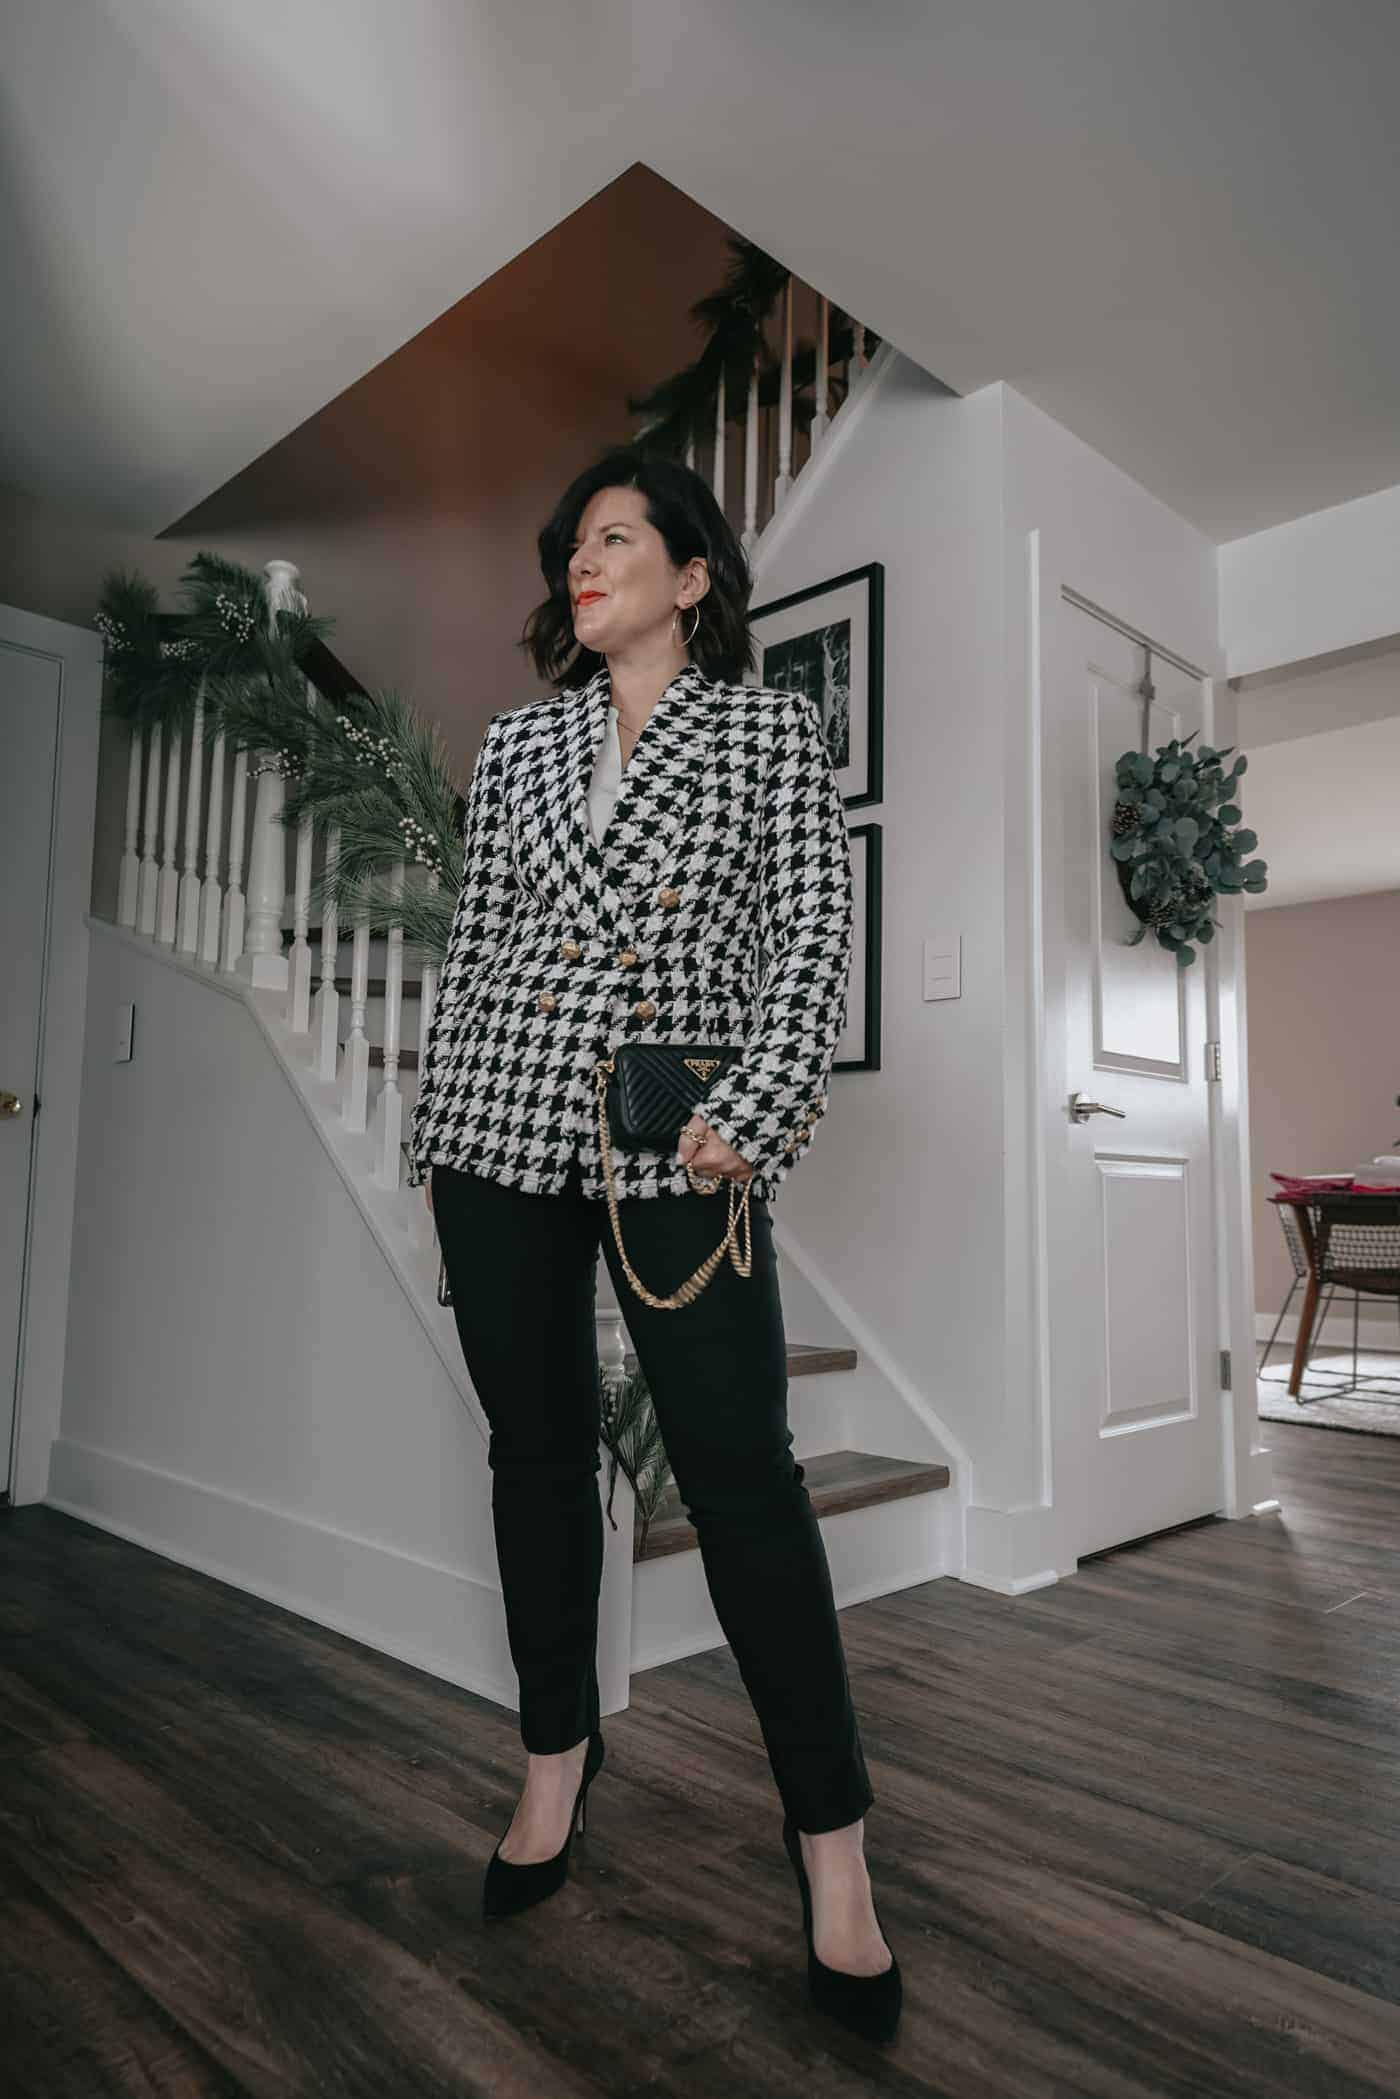 A Lily Love Affair showing you 5 ways to wear womens black pants. Wearing black blazer, prada handbag, black and white blazer, work outfit, petite black pants, fall outfit ideas, what to wear to work, black pants to work, what to wear to work